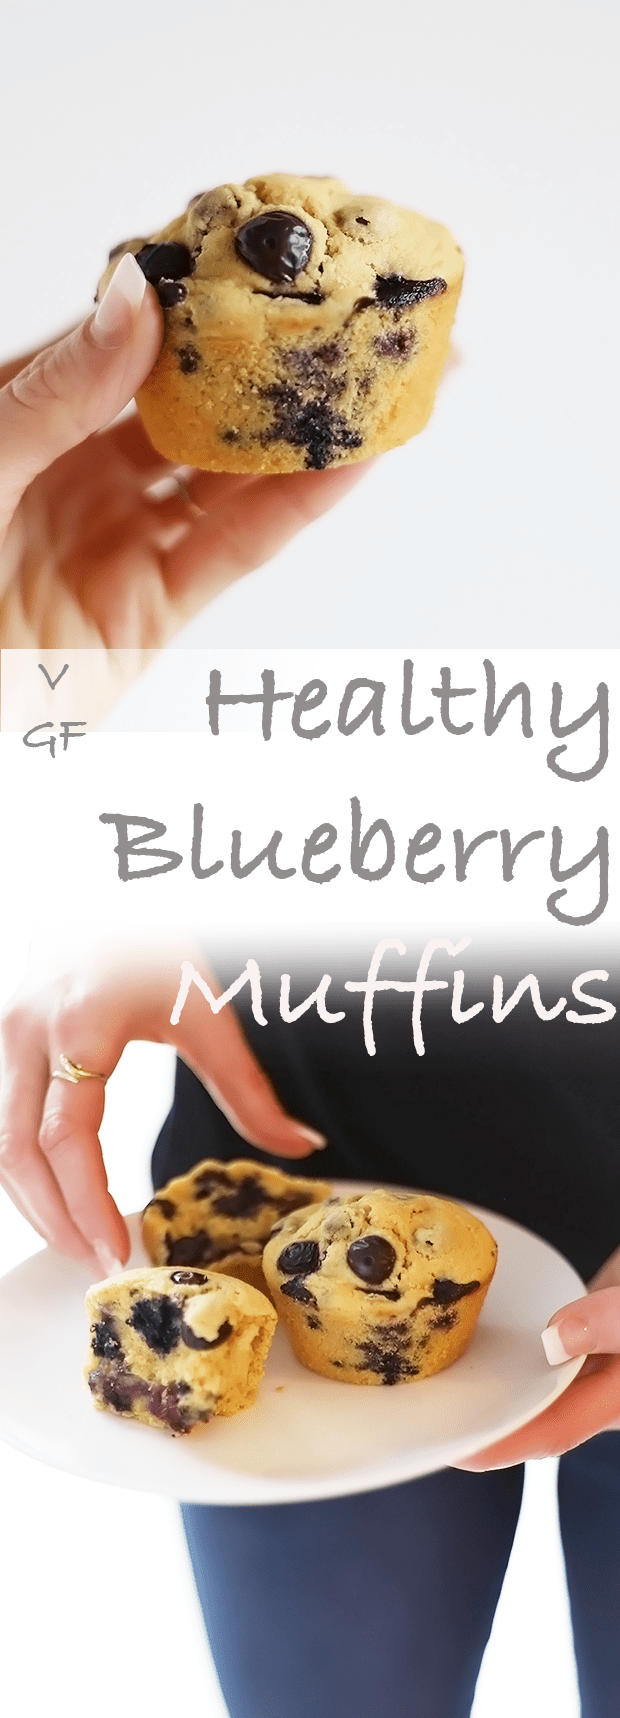 These Healthy Blueberry Muffins are super quick and easy to make! They are vegan, gluten free, refined sugar free and the texture is light and soft! | TwoRaspberries.com